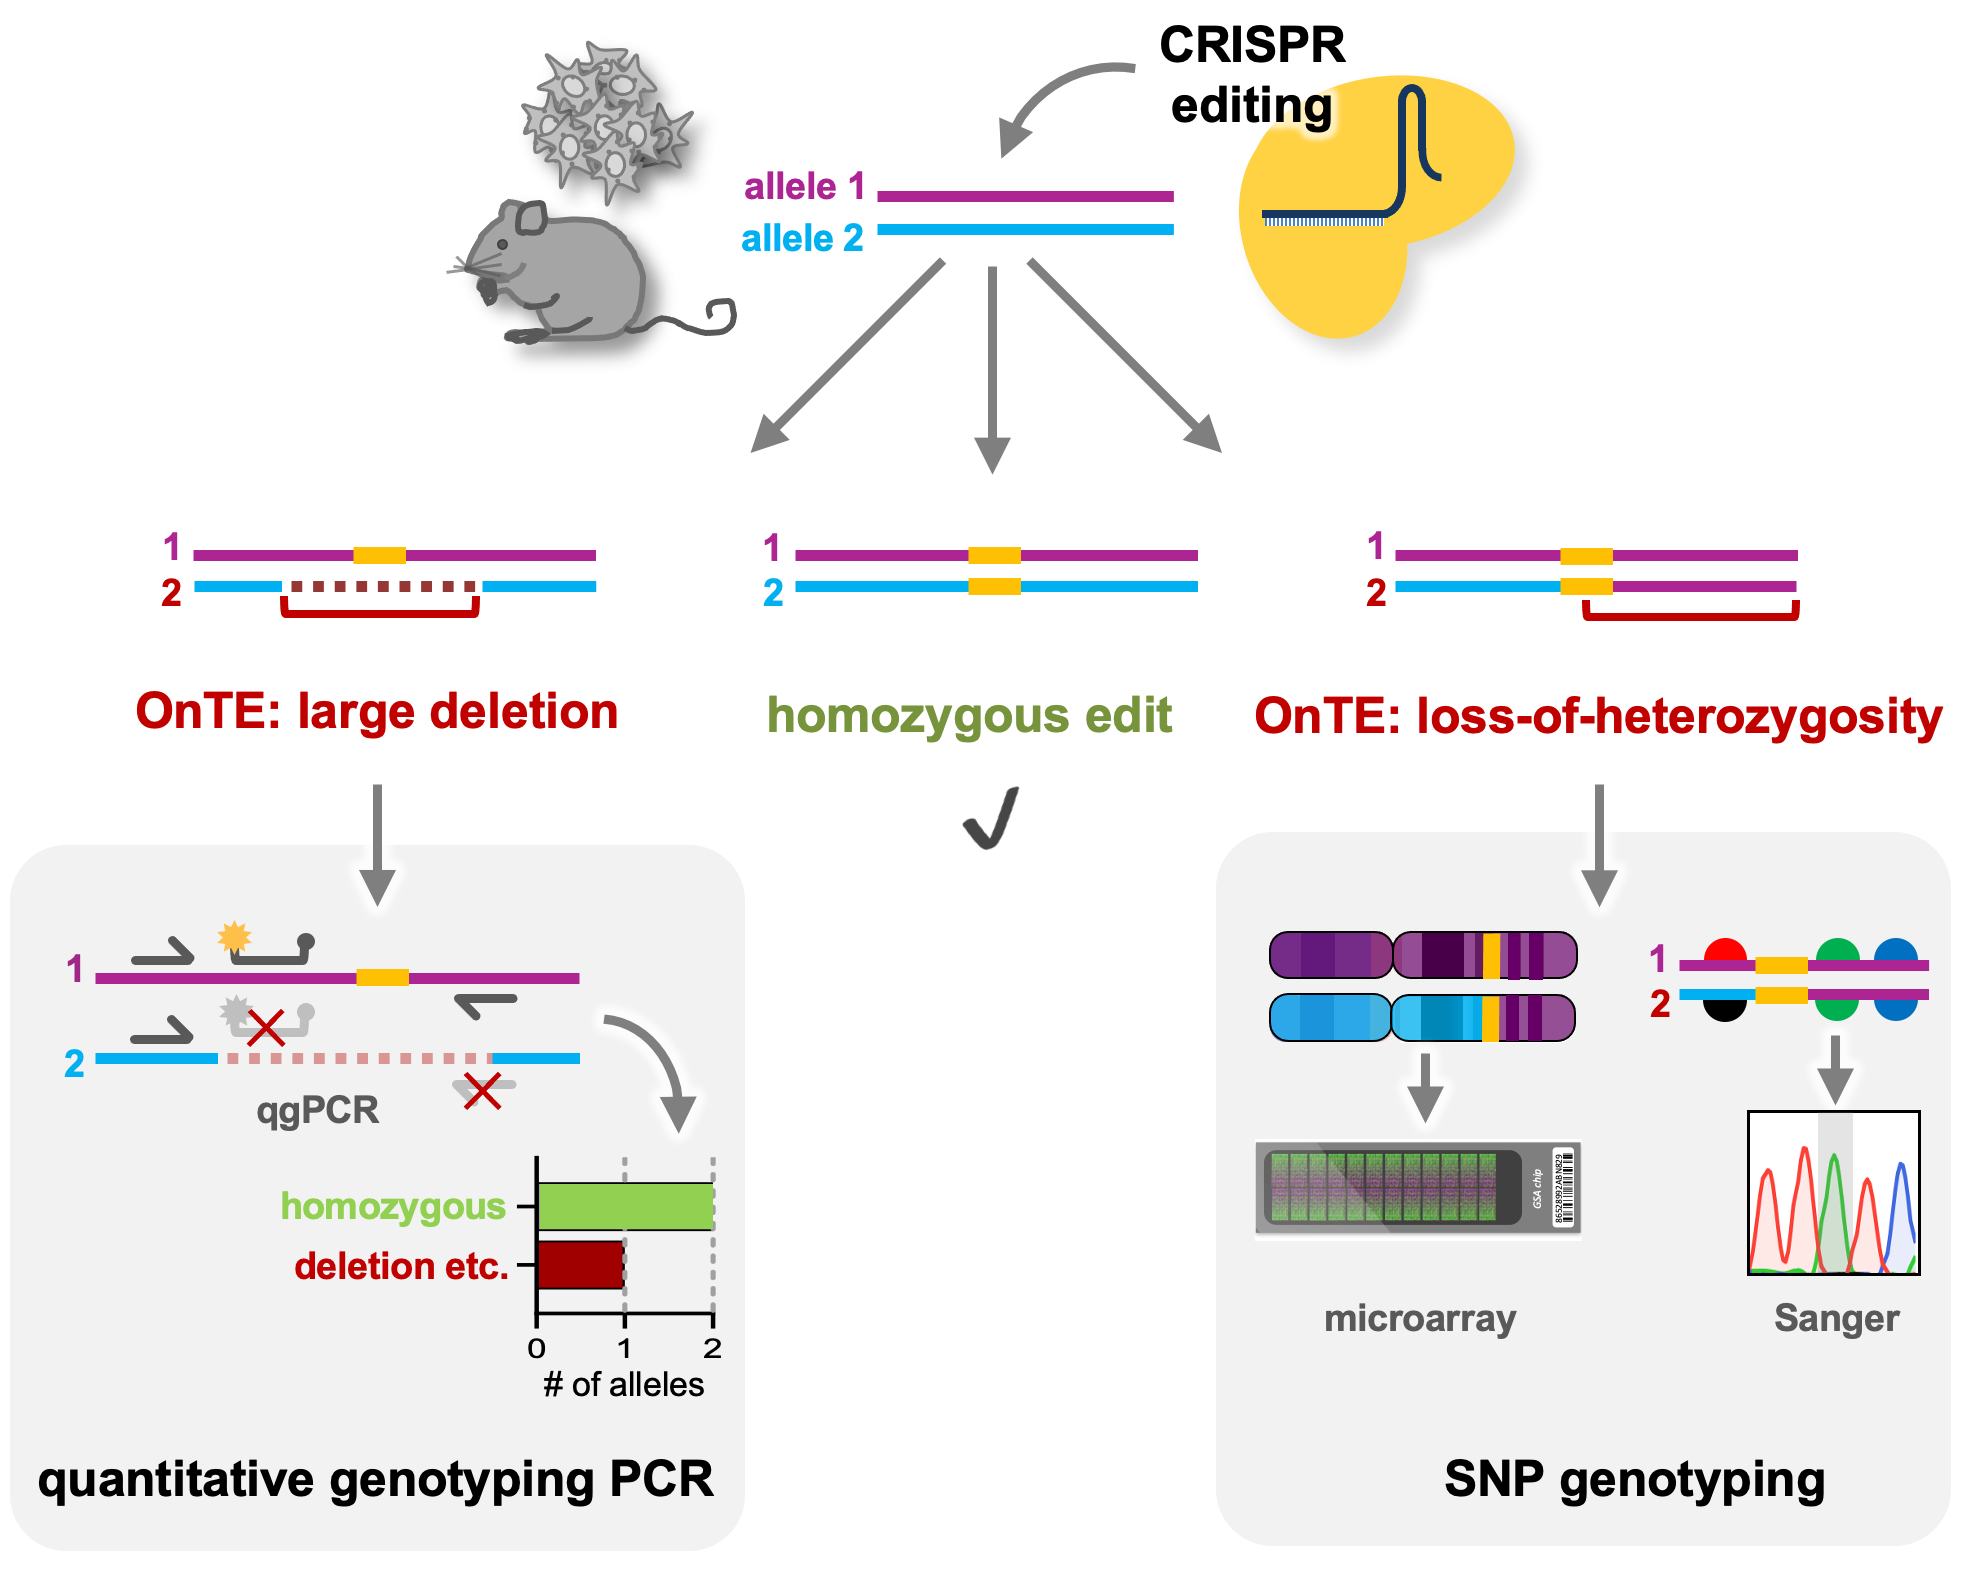 quantitative genotyping PCR can detect large deletions, insertions or complex rearrangements by identifying the number of intact alleles at the edited locus. SNP genotyping either by nearby SNP sequencing or genome-wide analysis by SNP microarrays, can identify regions of loss-of-heterozygosity.